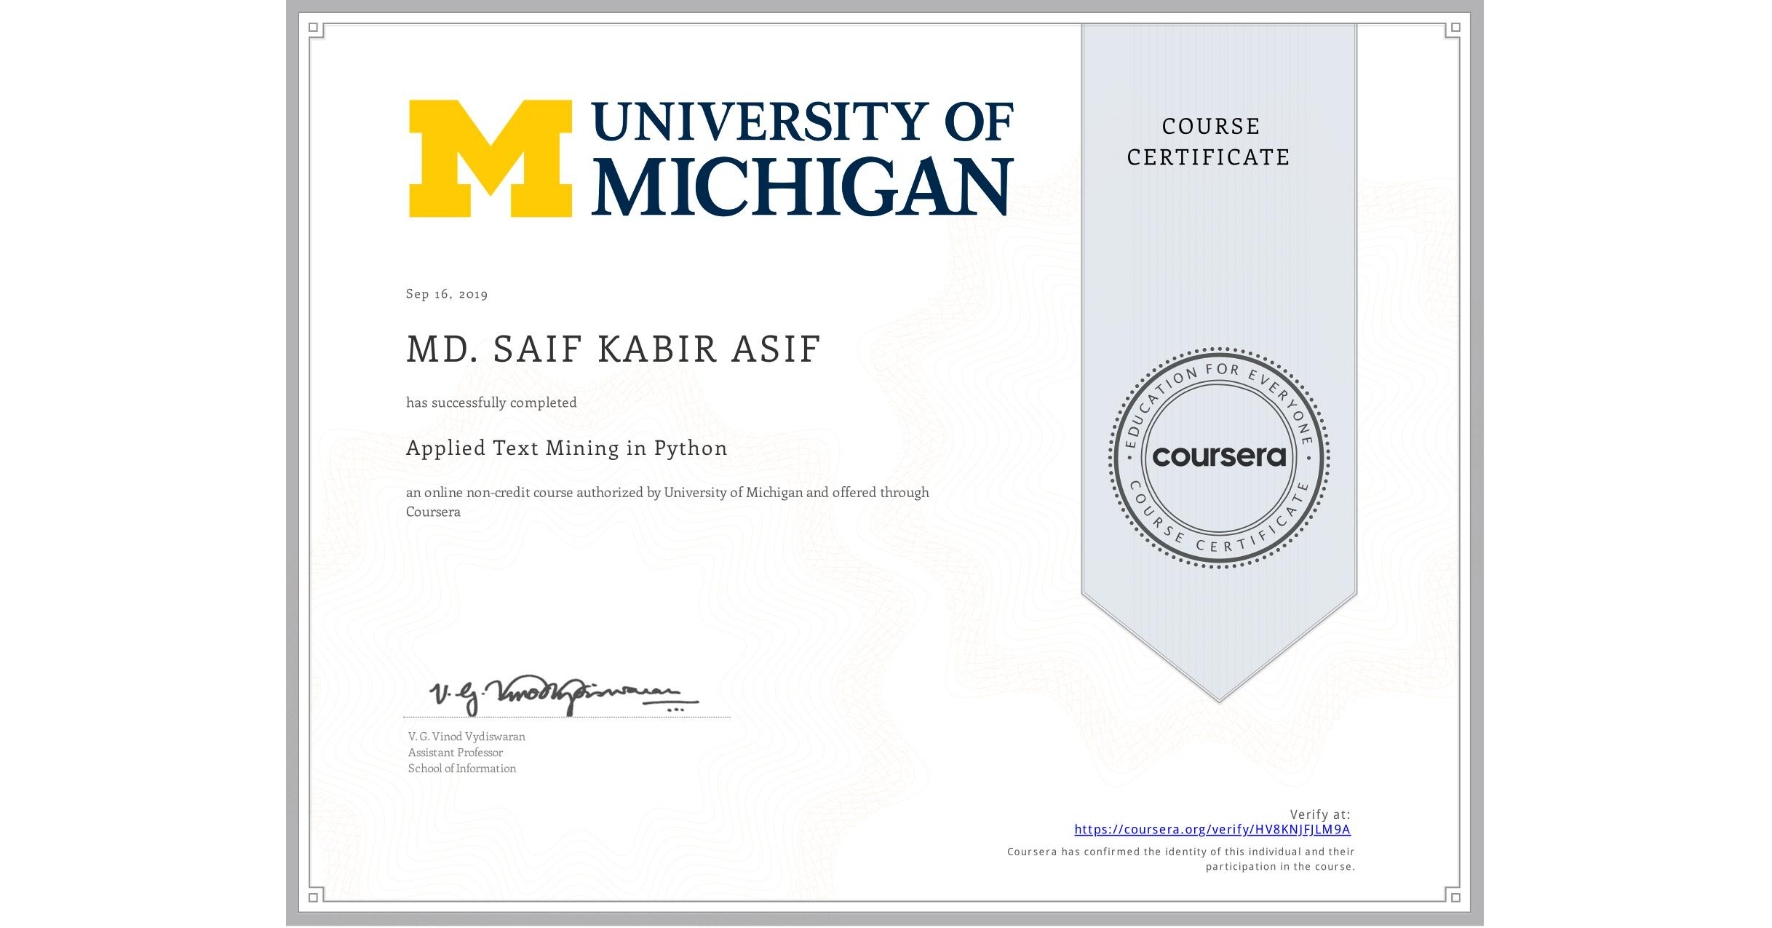 View certificate for Md. Saif Kabir  Asif, Applied Text Mining in Python, an online non-credit course authorized by University of Michigan and offered through Coursera